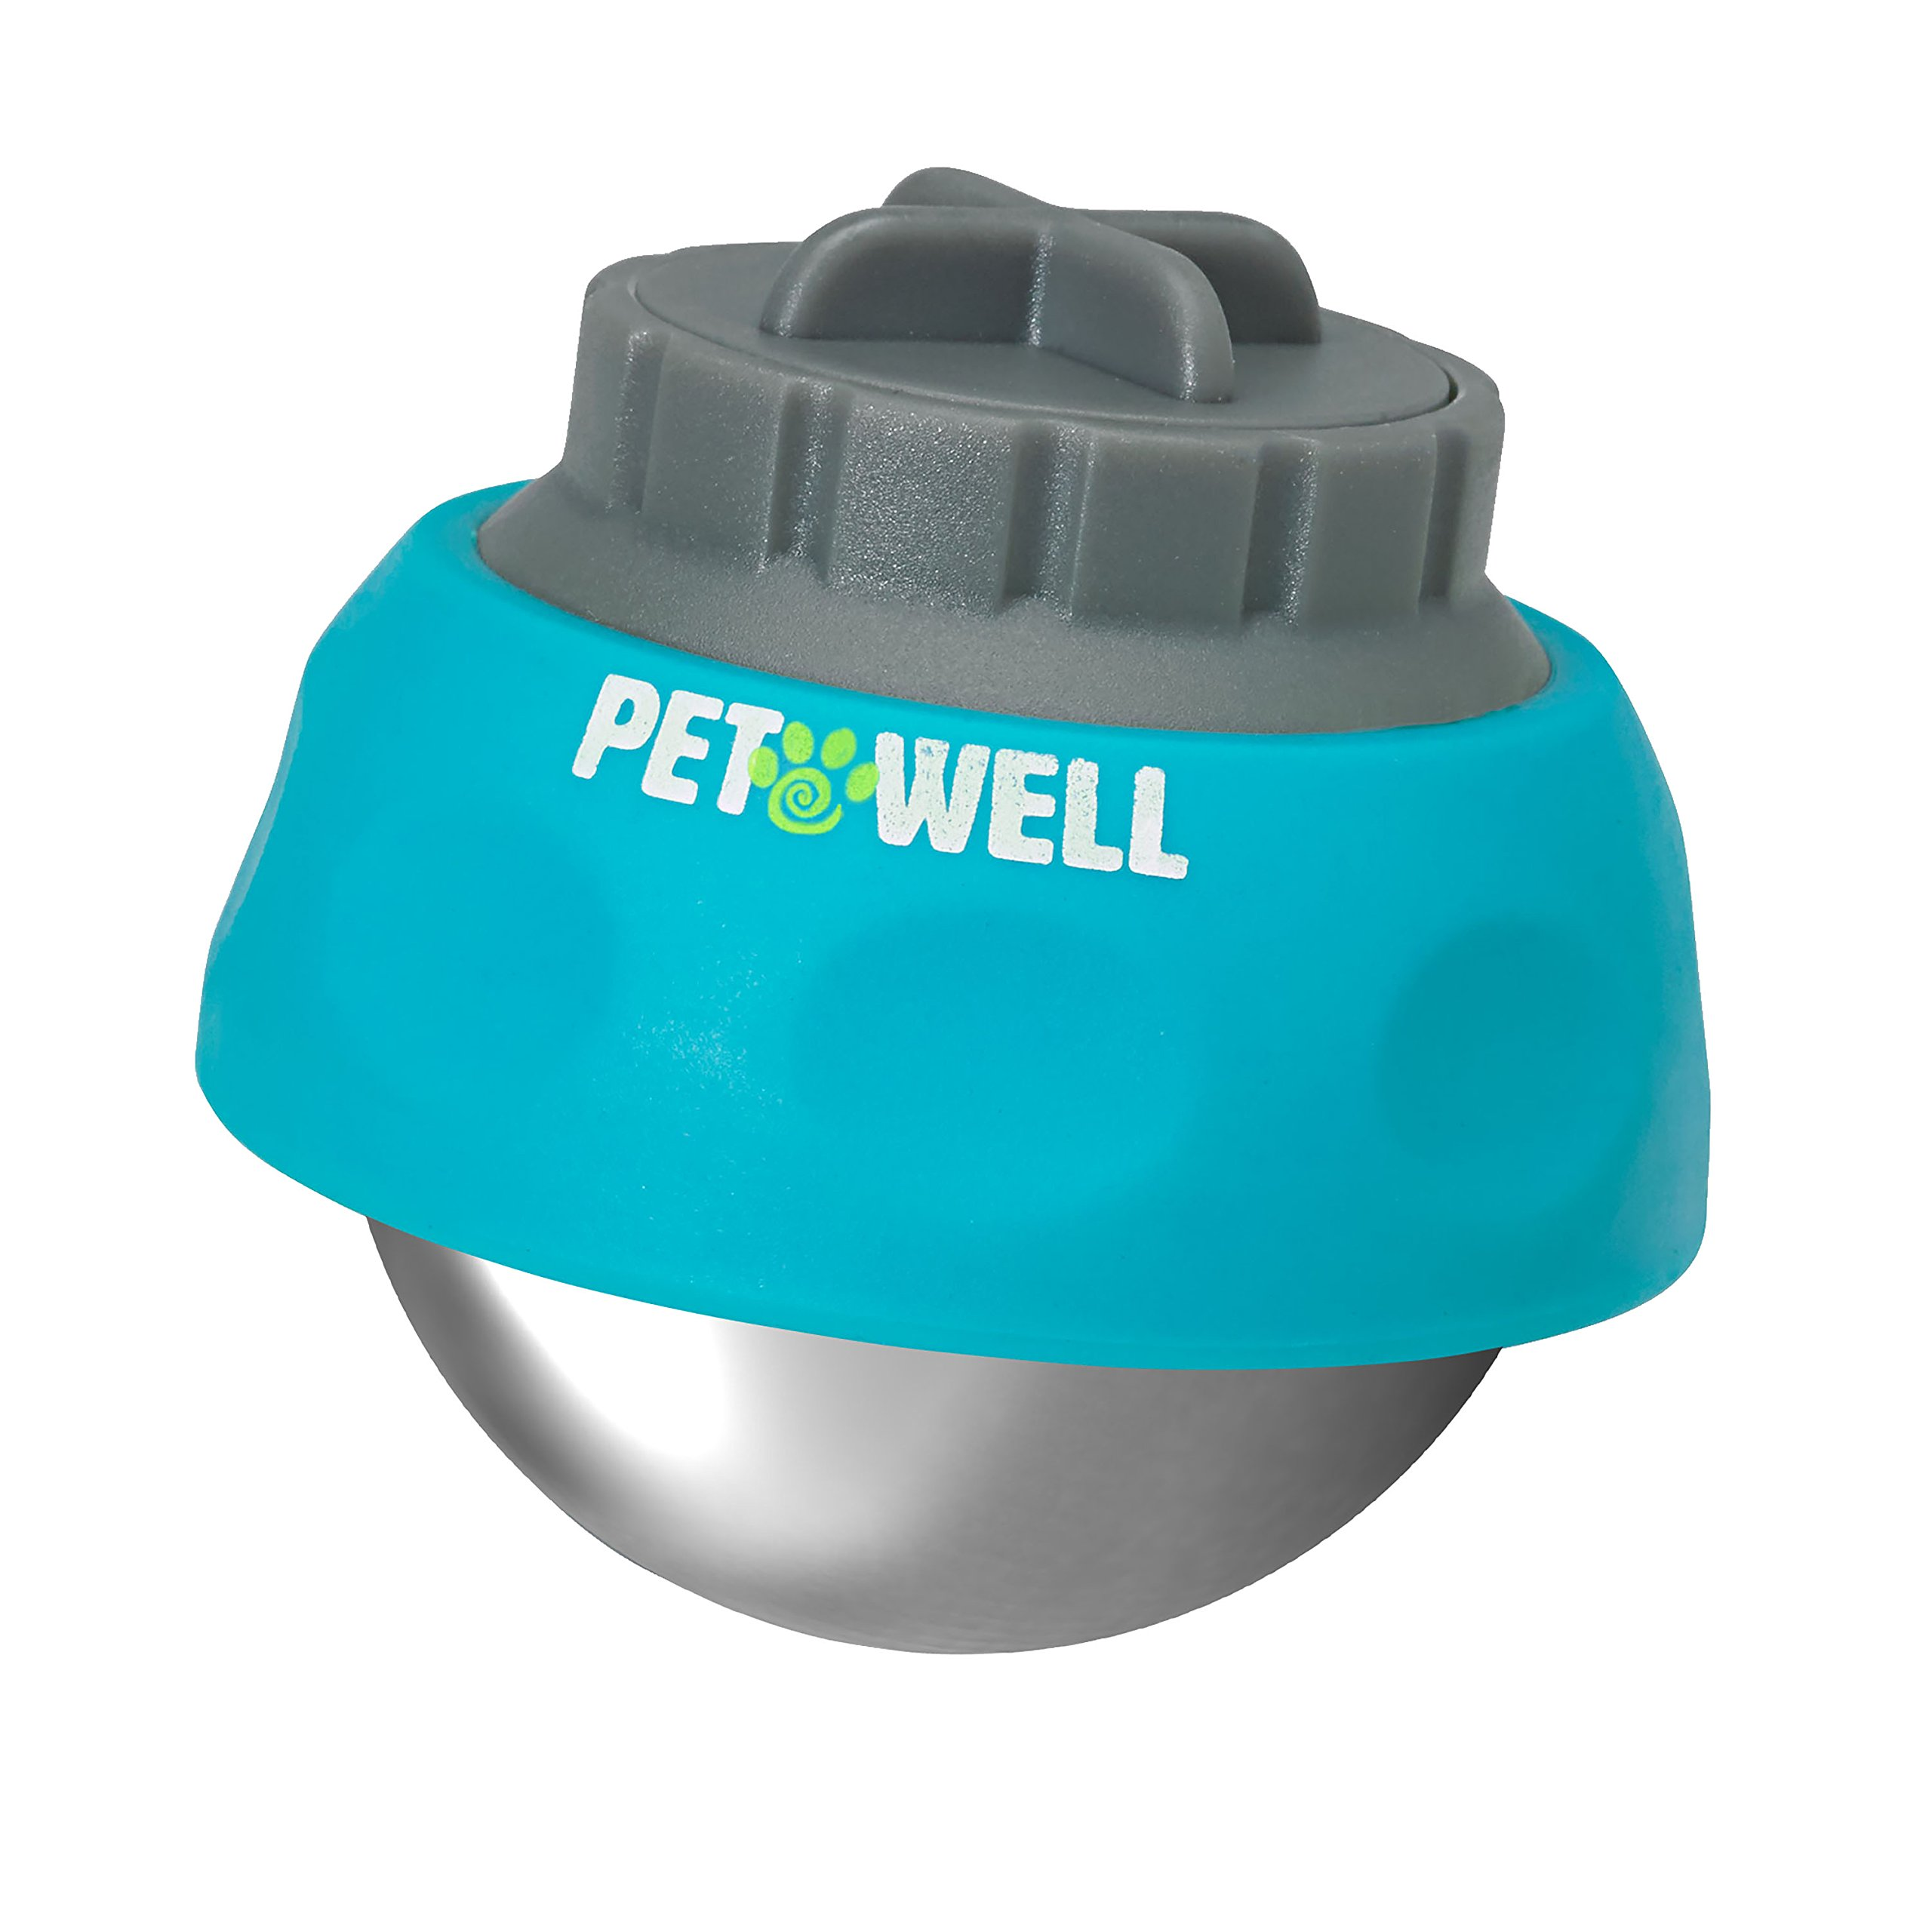 PetWell All-Over Handheld Massage Roller for All Size Pets (Dogs, Cats) by PetWell (Image #1)